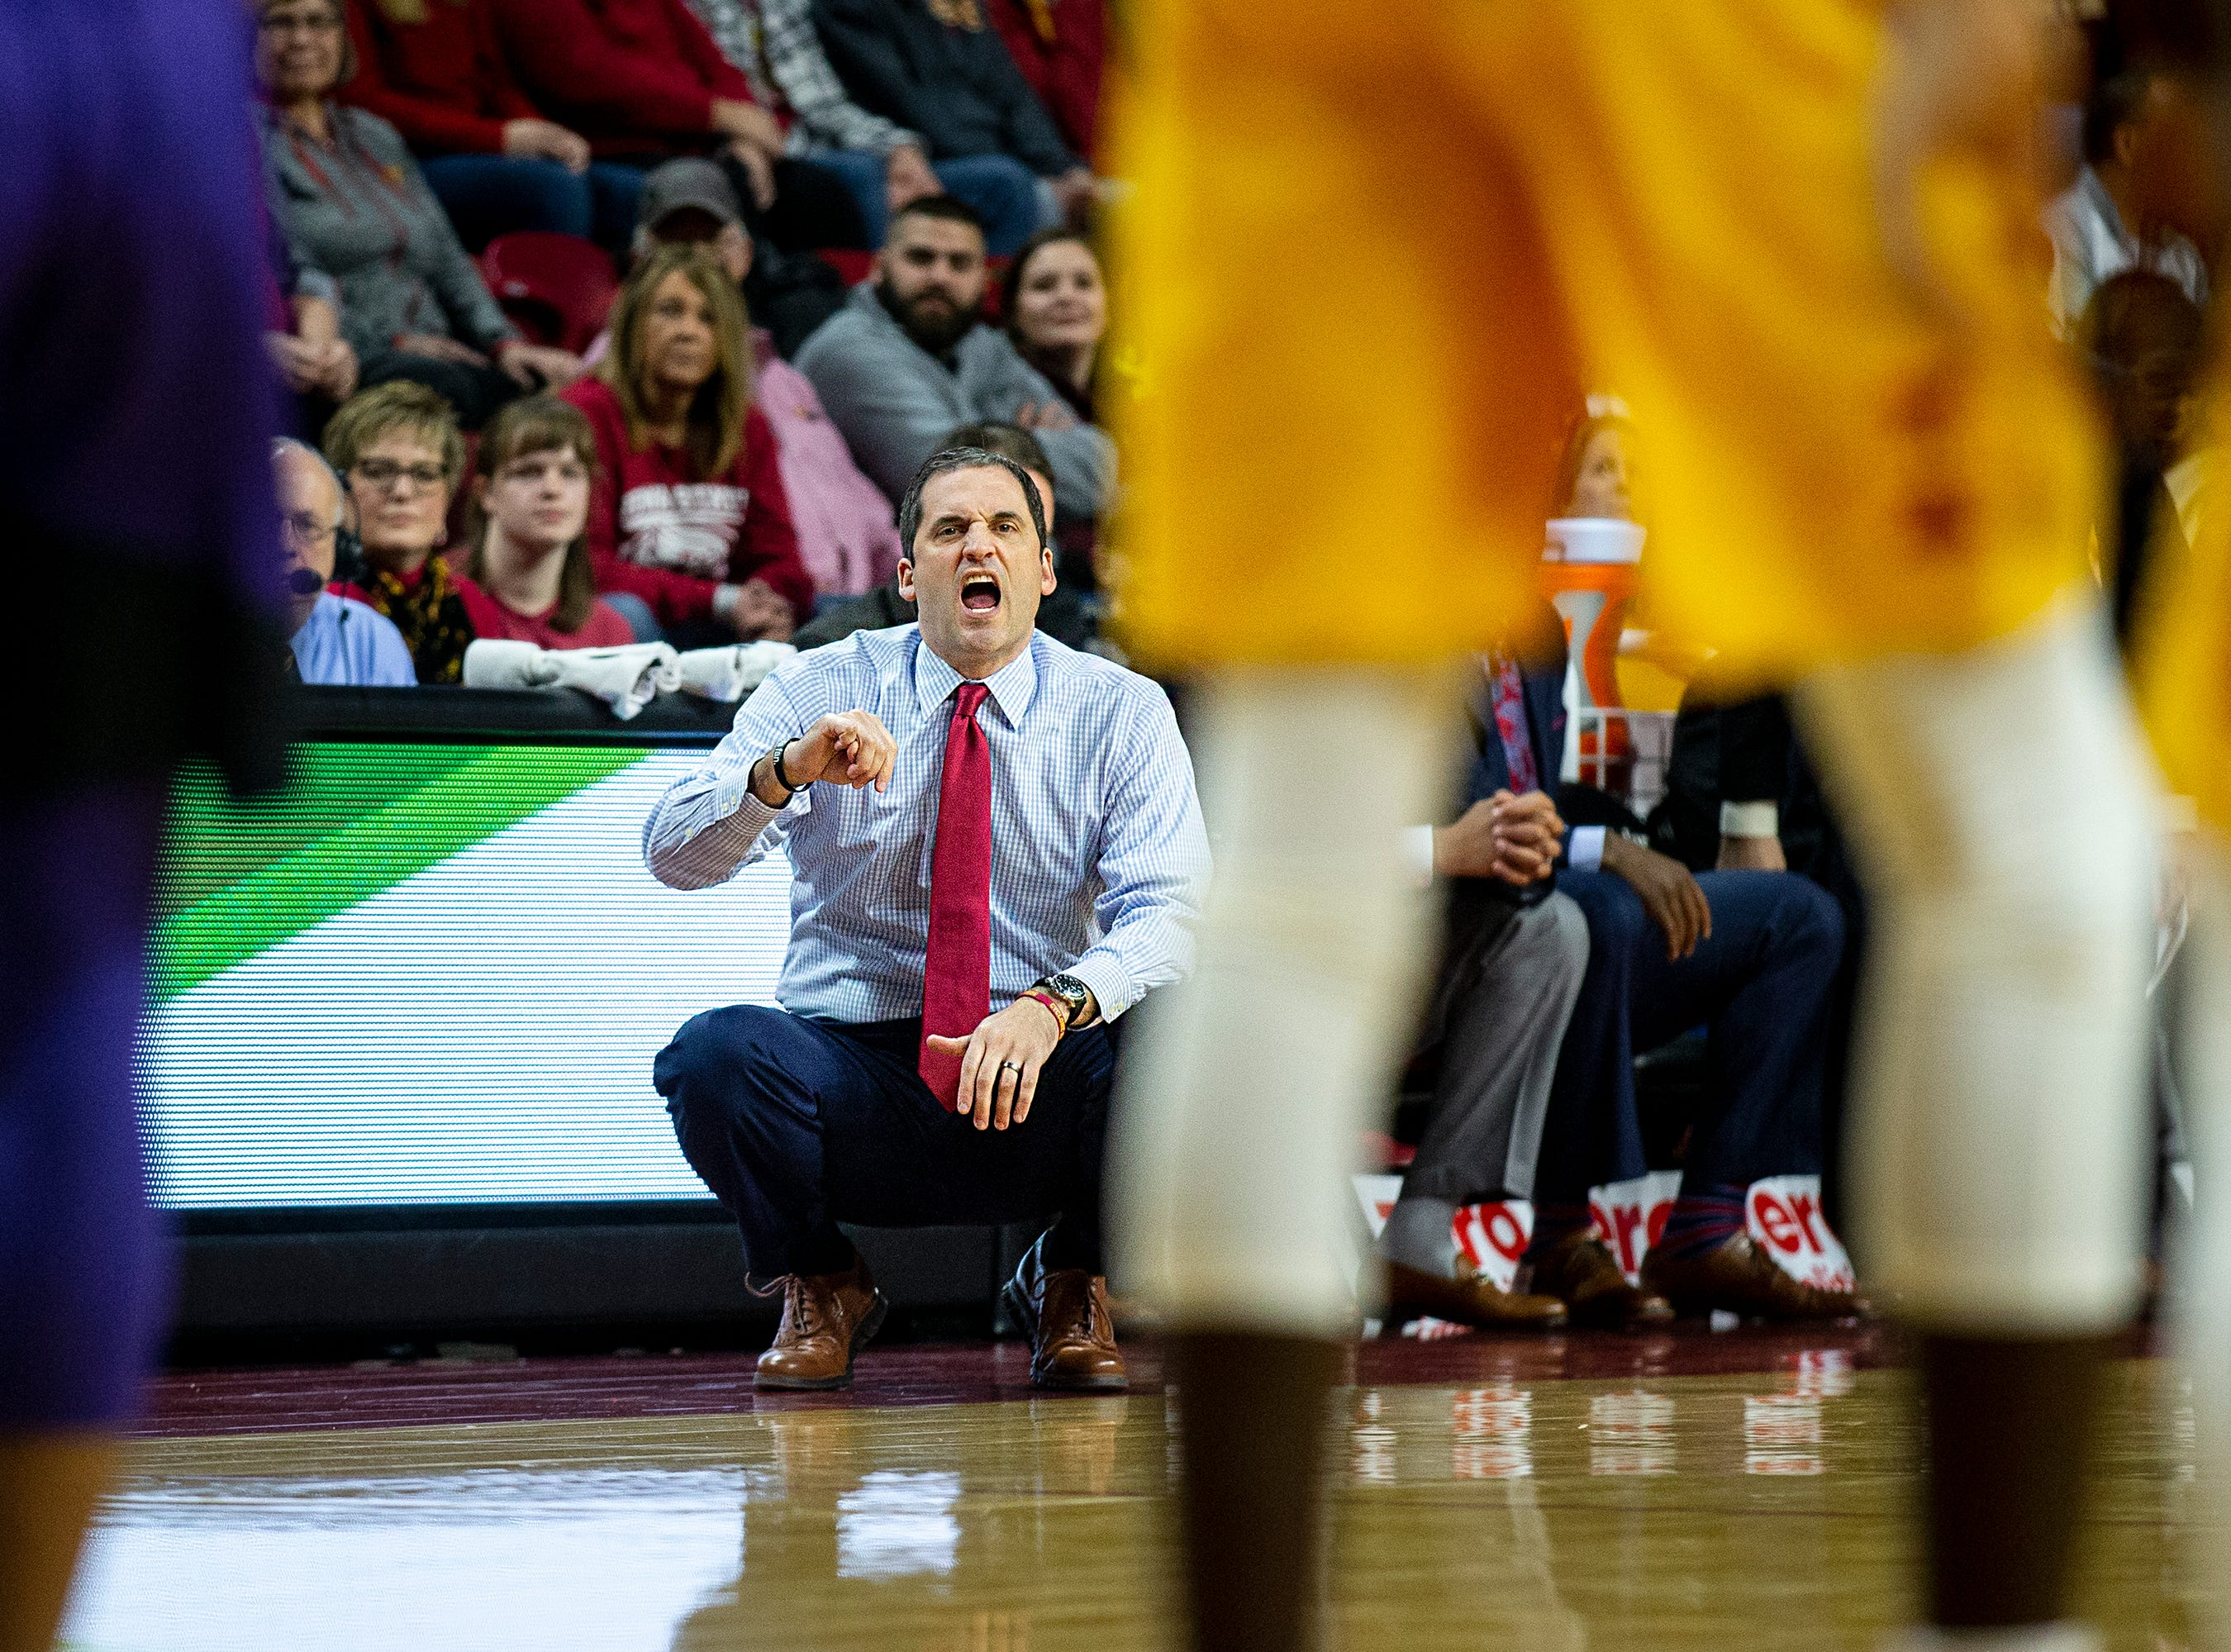 Iowa State Head Coach Steve Prohm calls out a play during the Iowa State men's basketball game against Kansas State on Saturday, Jan. 12, 2019, in Hilton Coliseum.